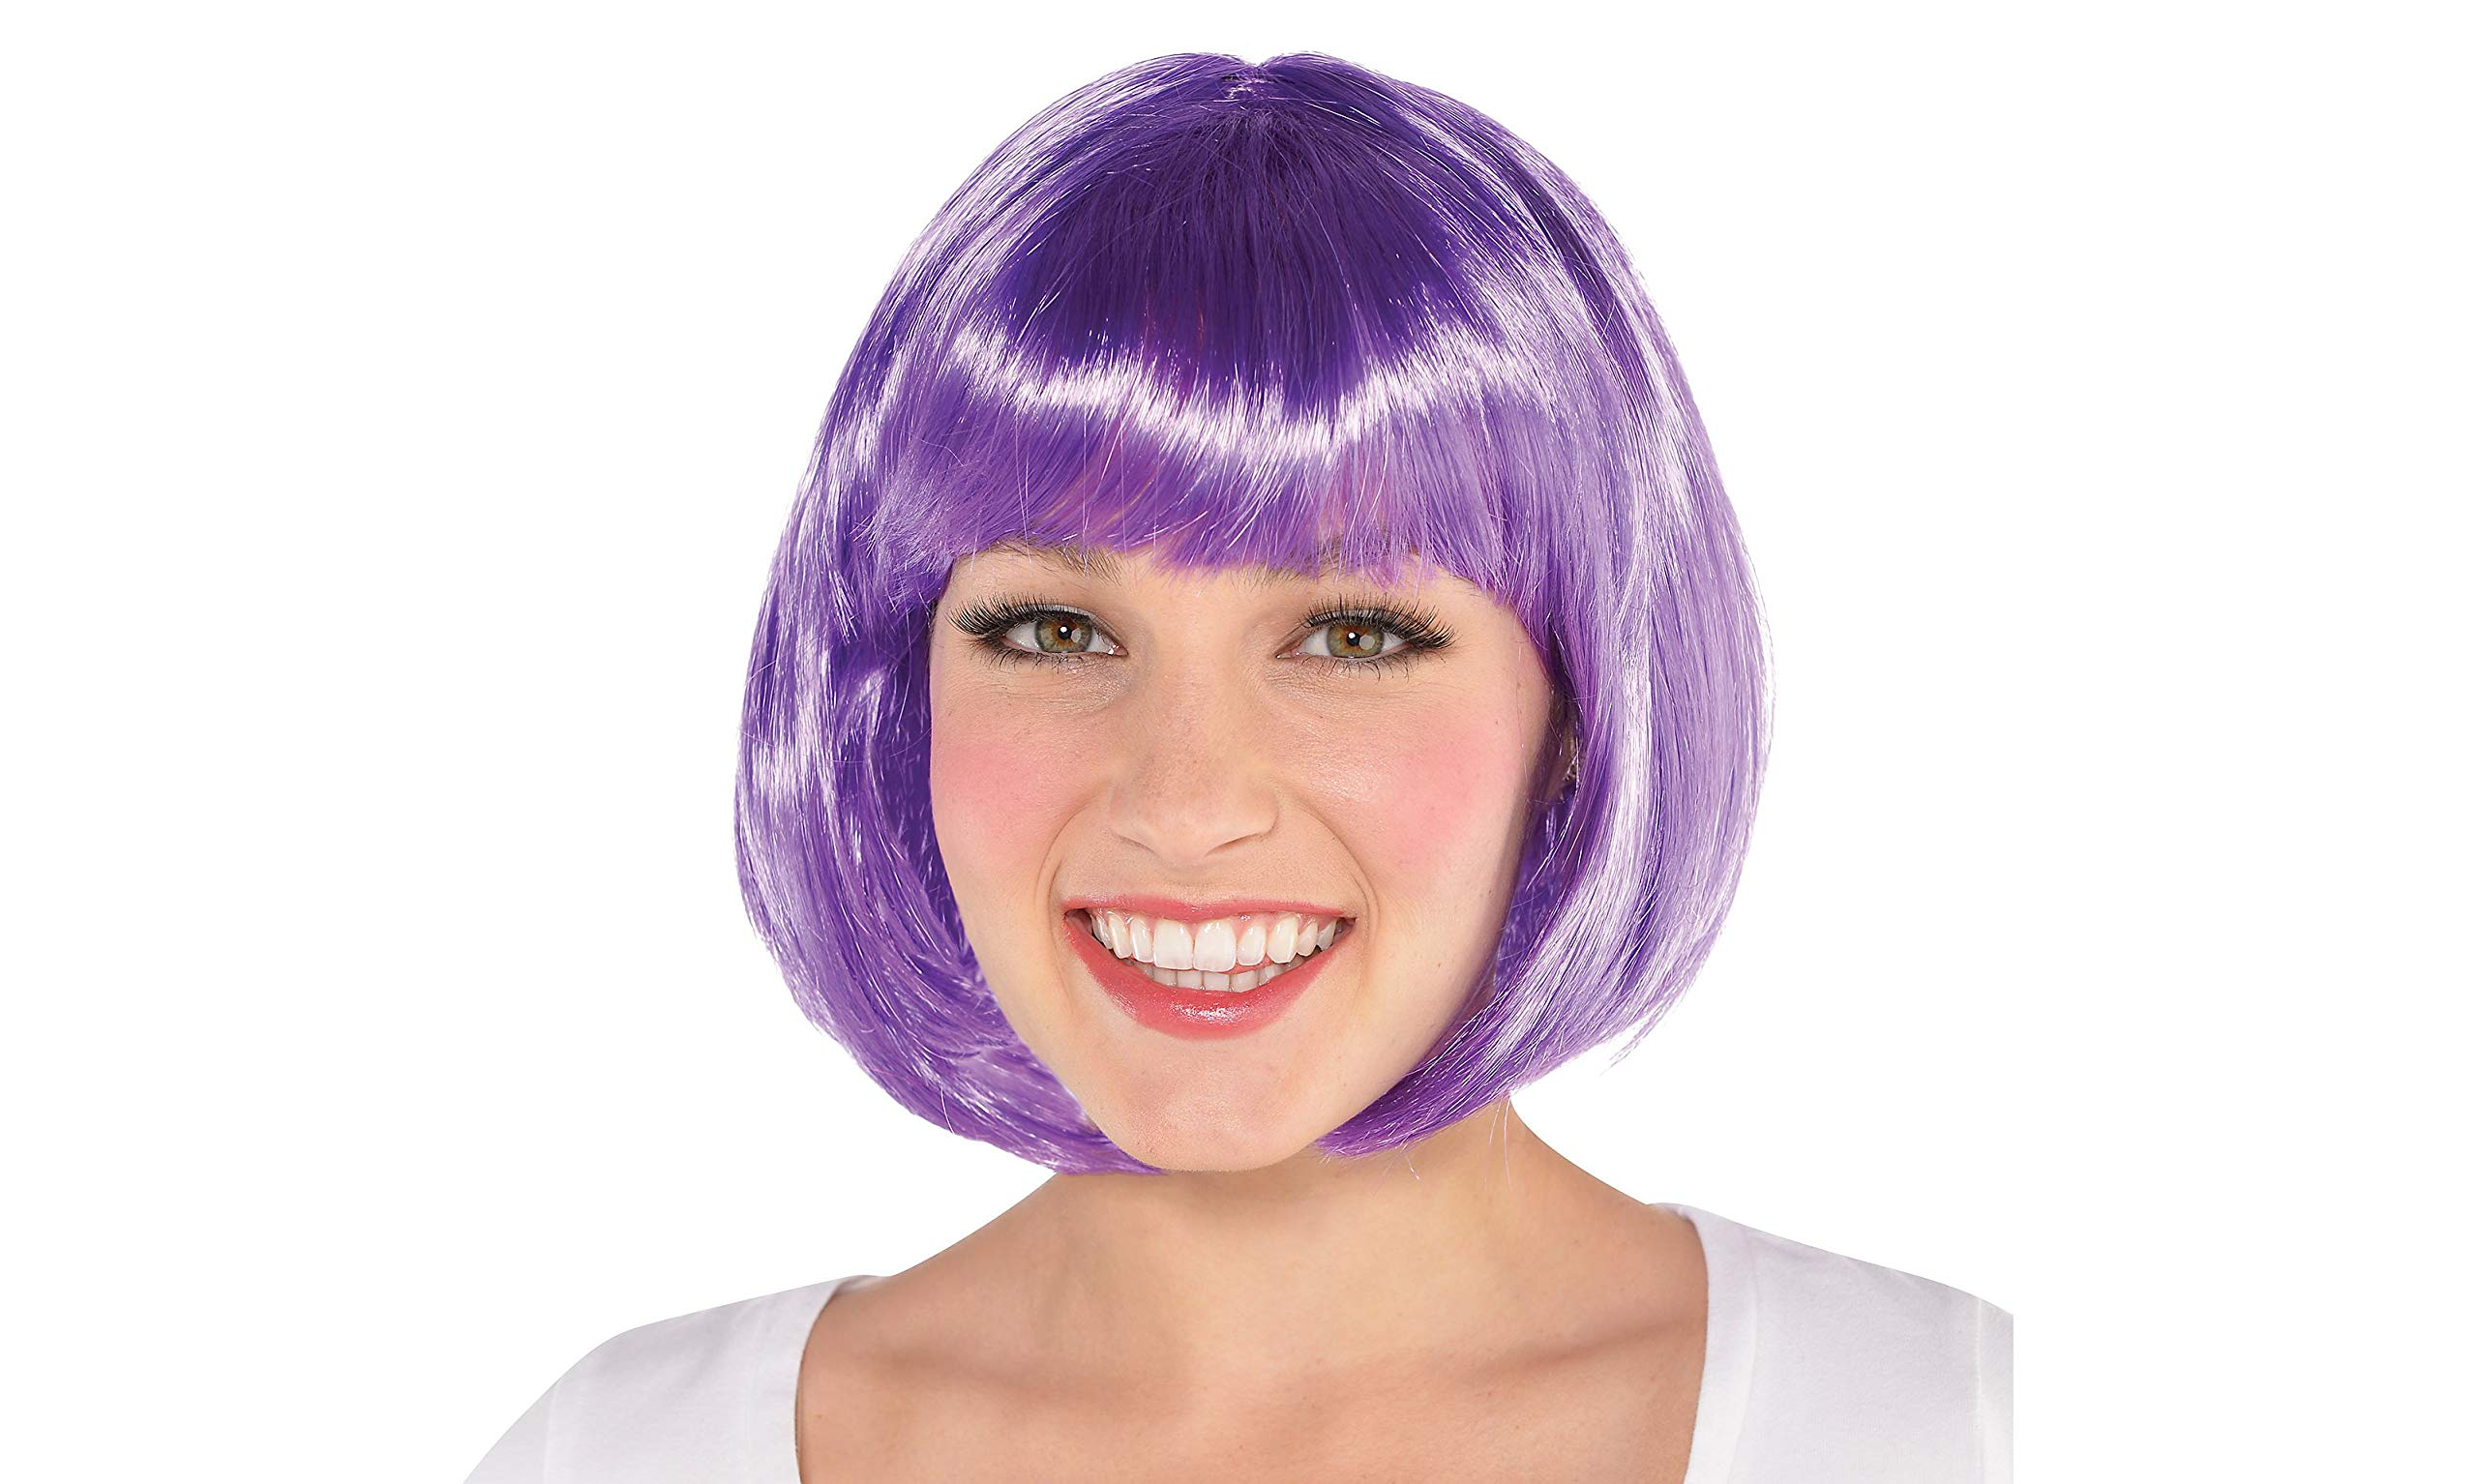 Amscan Bob Style Wig (Wigs and Adult Costume Accessories Plus Children Alike) Fun Party Supplies, Purple